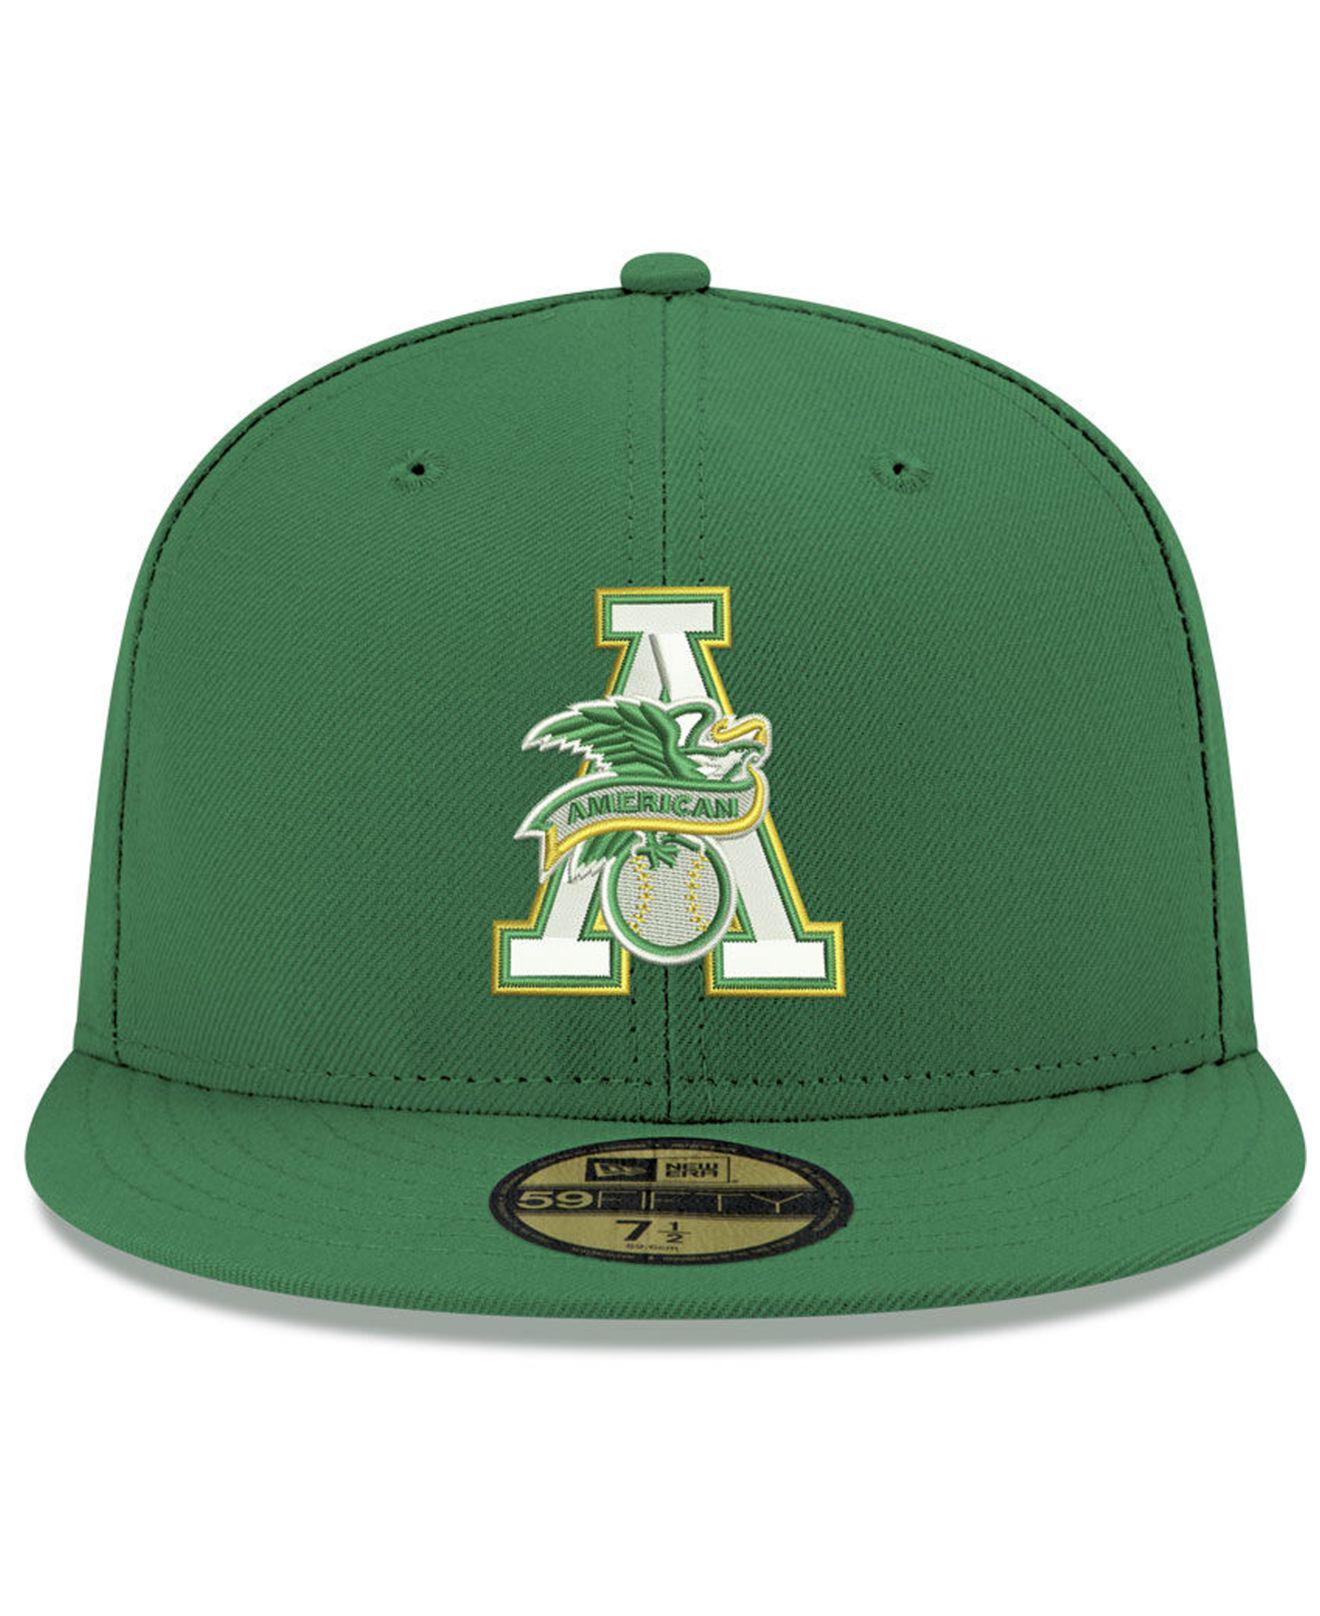 1ca8edadc73a1 Lyst - KTZ Oakland Athletics League Front 59fifty Fitted Cap in ...